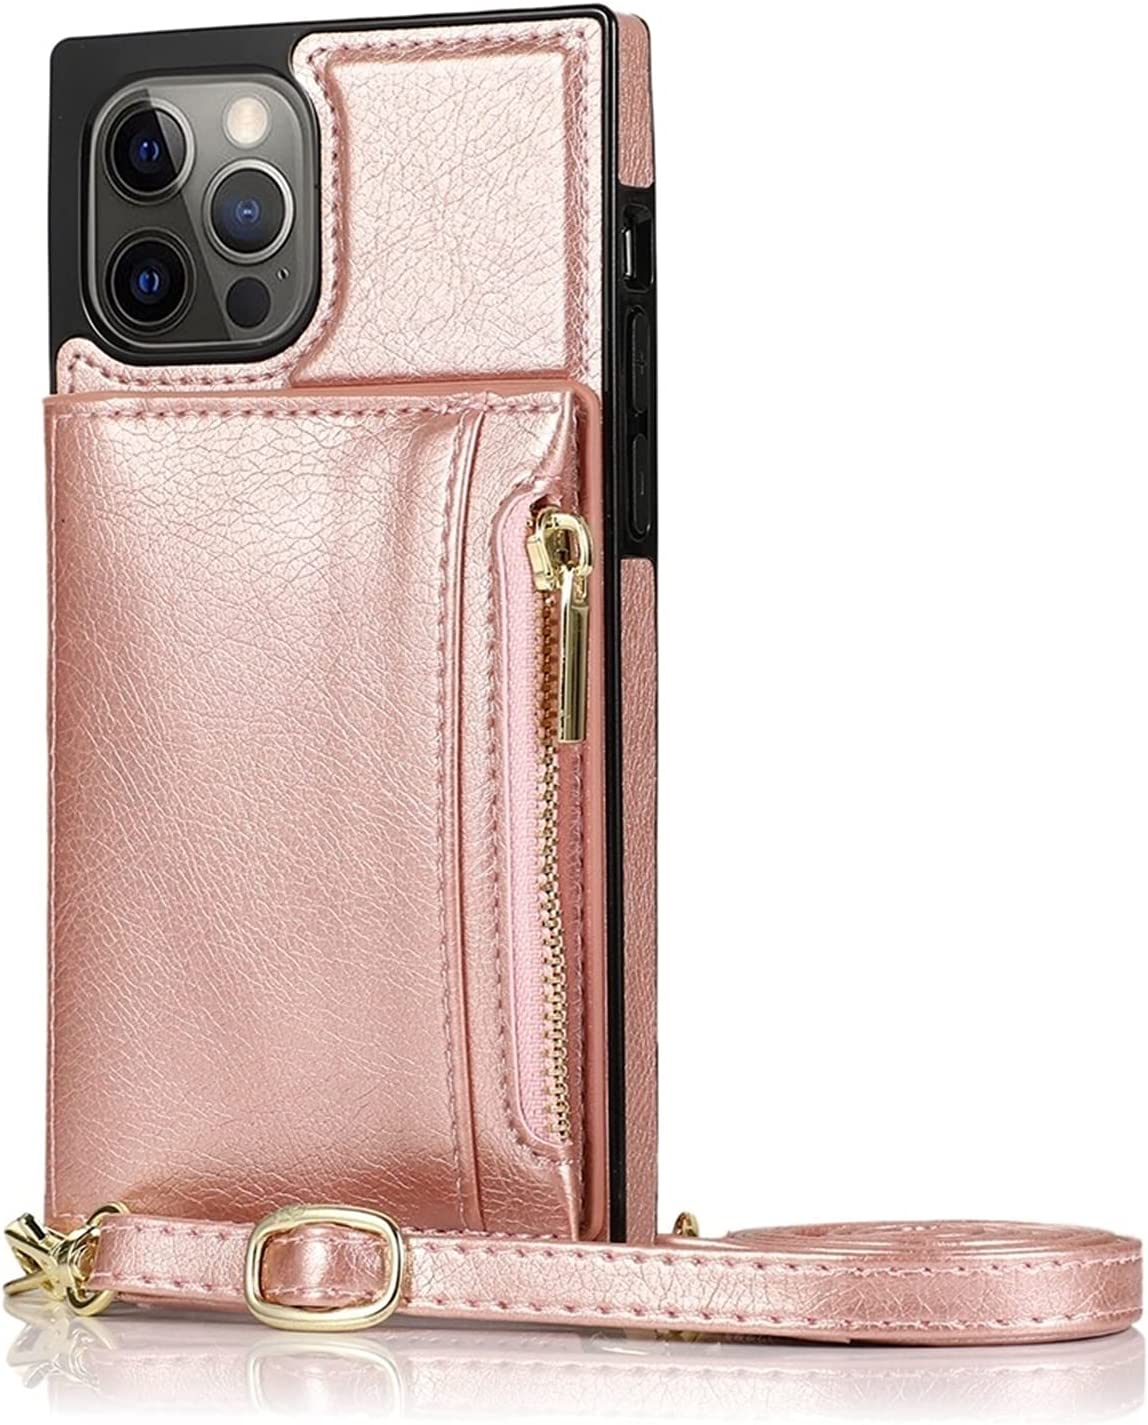 Case for iPhone 12 Pro Max, Magnetic Zipper Wallet Case with Credit Card Holder /Crossbody Lanyard, Shockproof Leather TPU Case Cover for iPhone 12 Pro Max 6.7-inch 2020 Release ( Color : Rosegold )